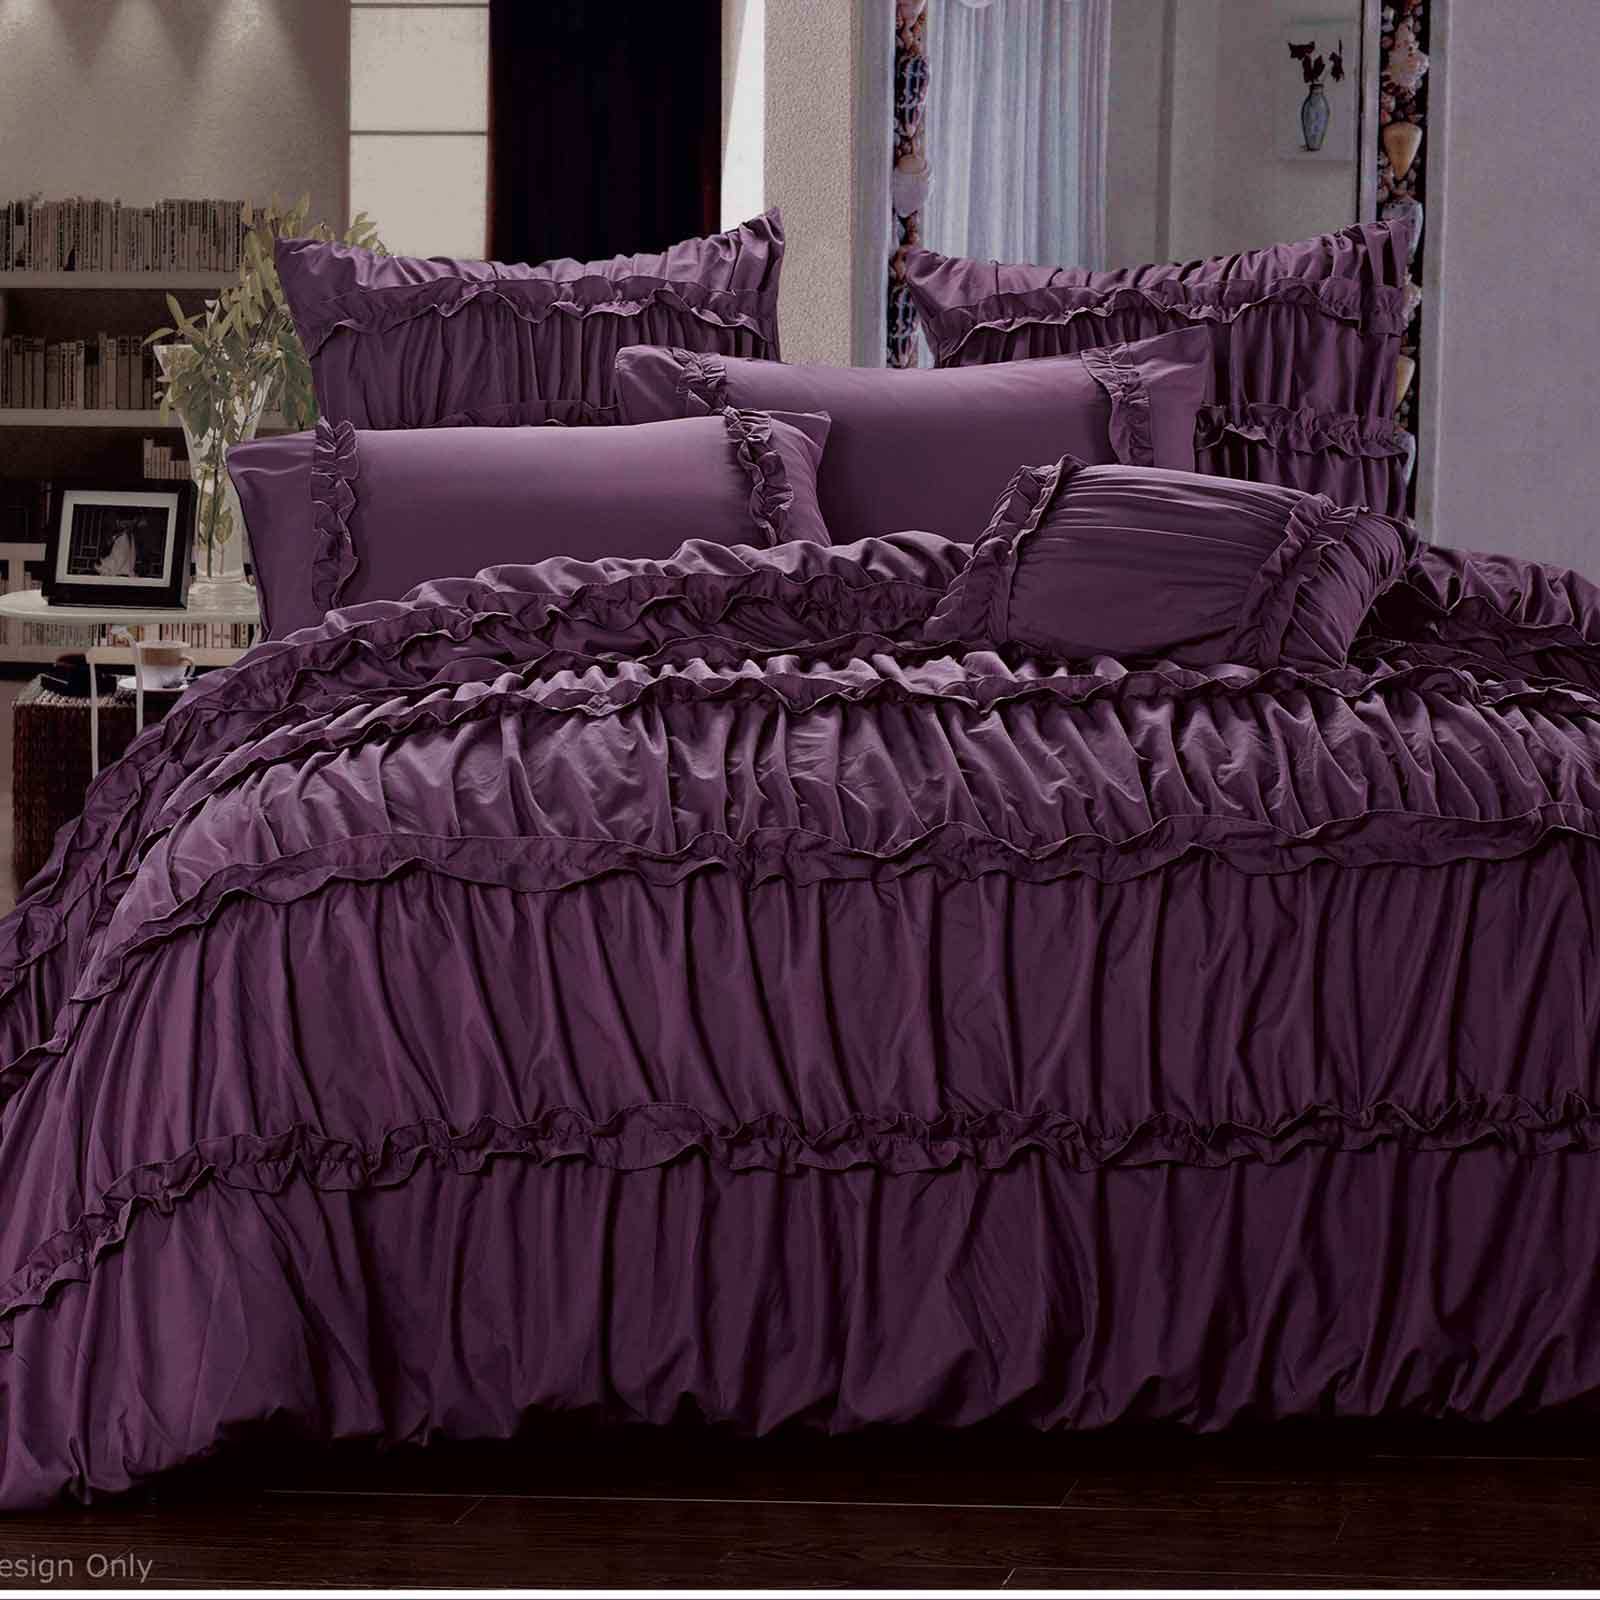 charlotte plum purple ruffle queen king quilt cover set 3pcs with pillowcases. Black Bedroom Furniture Sets. Home Design Ideas